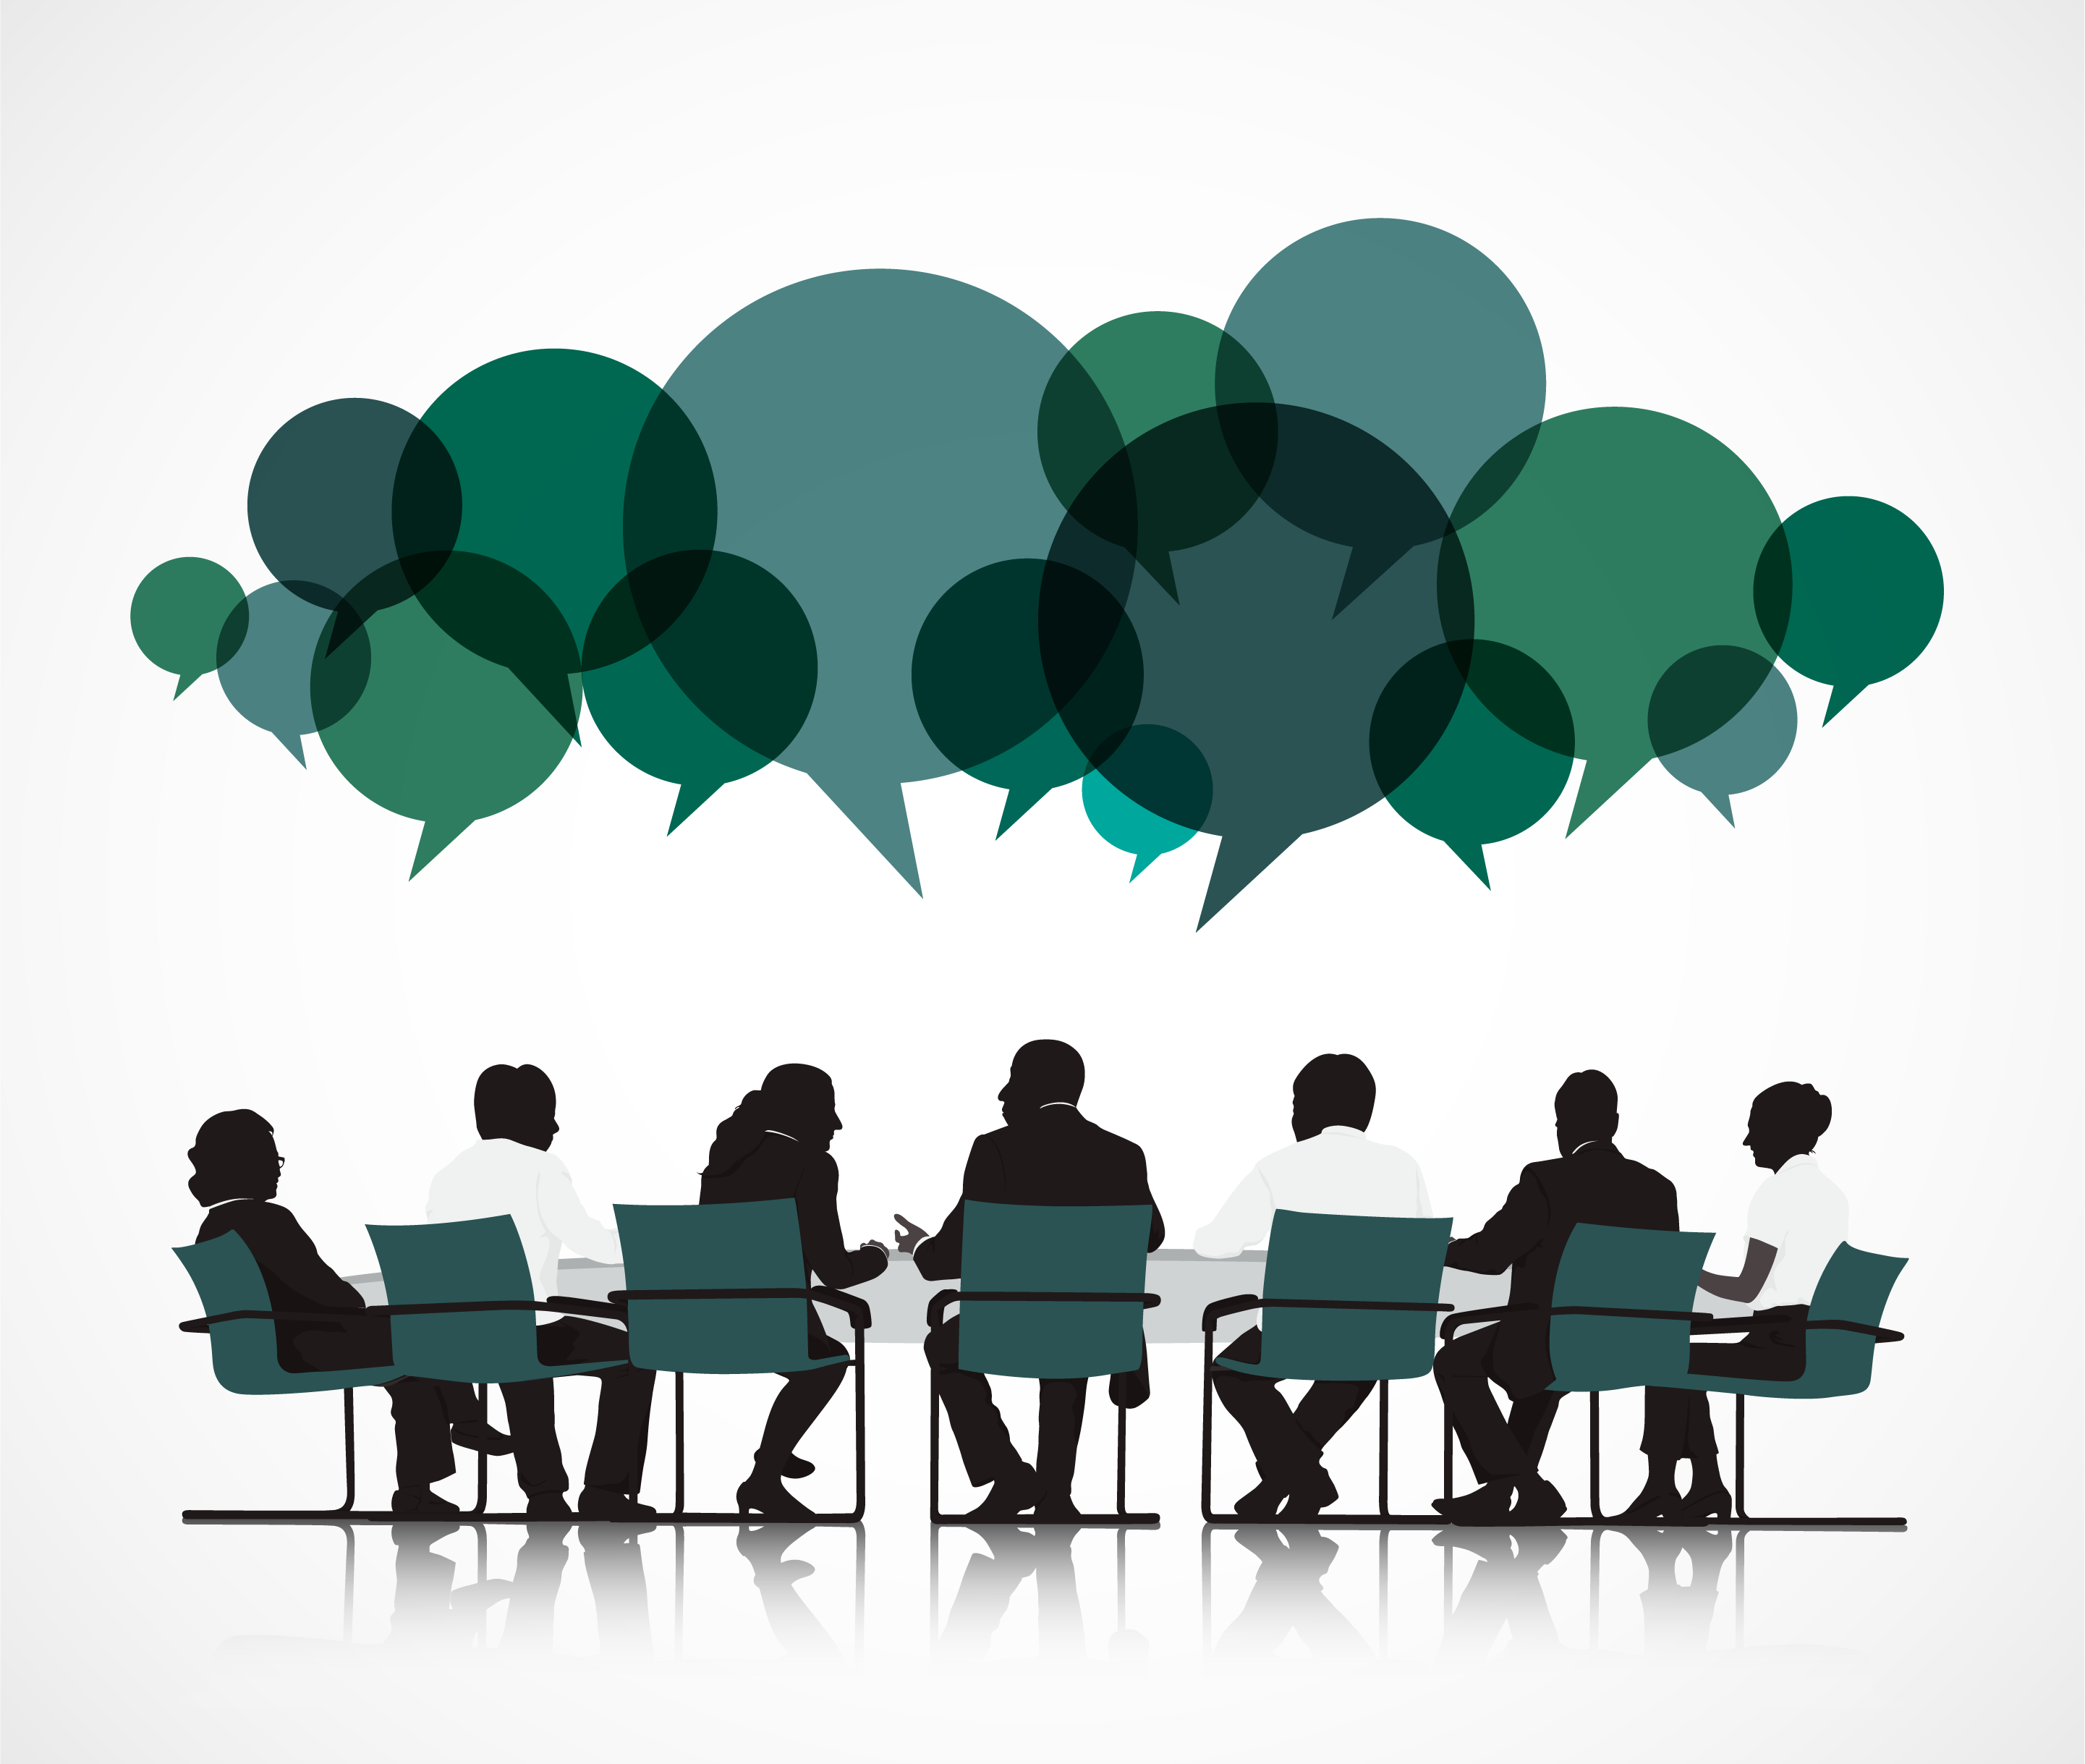 Meeting Icon PNG Transparent Background, Free Download #3242 - FreeIconsPNG